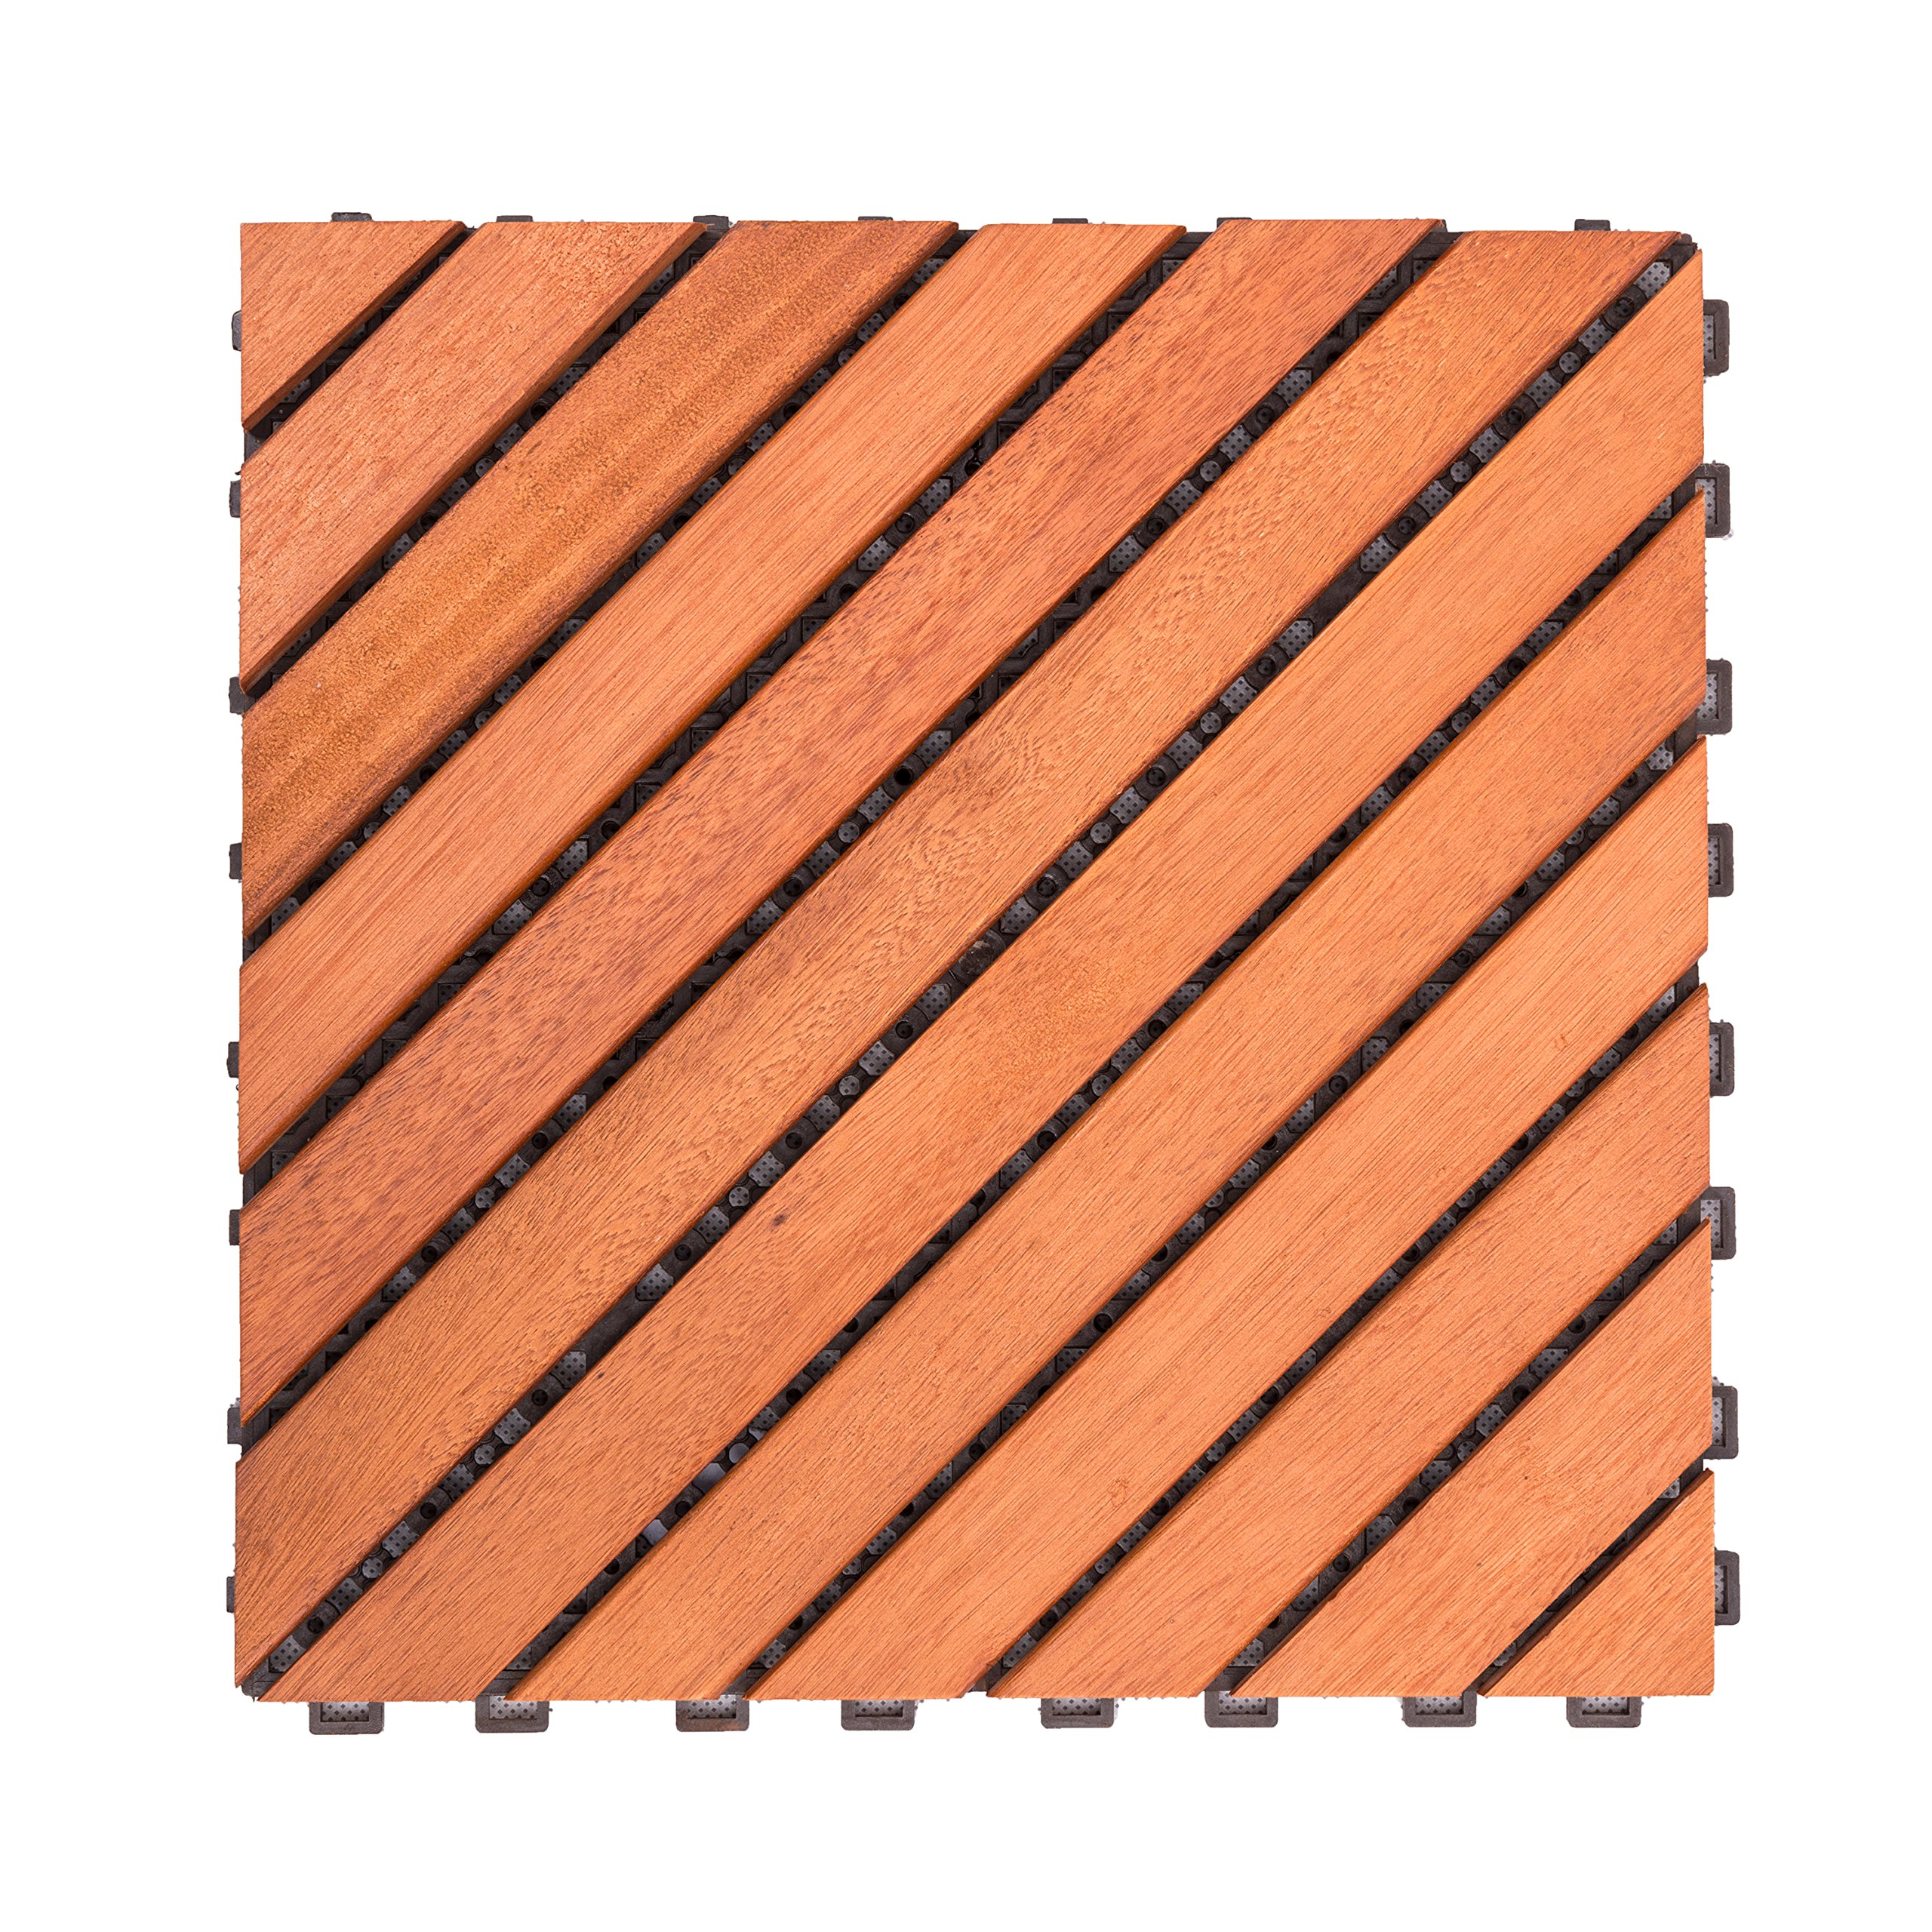 Vifah V182 Interlocking FSC Eucalyptus Deck Tile 12-Slat Diagonal Design, 10-Pack, Natural Wood Finish, 11 by 11 by 1-Inch by Vifah